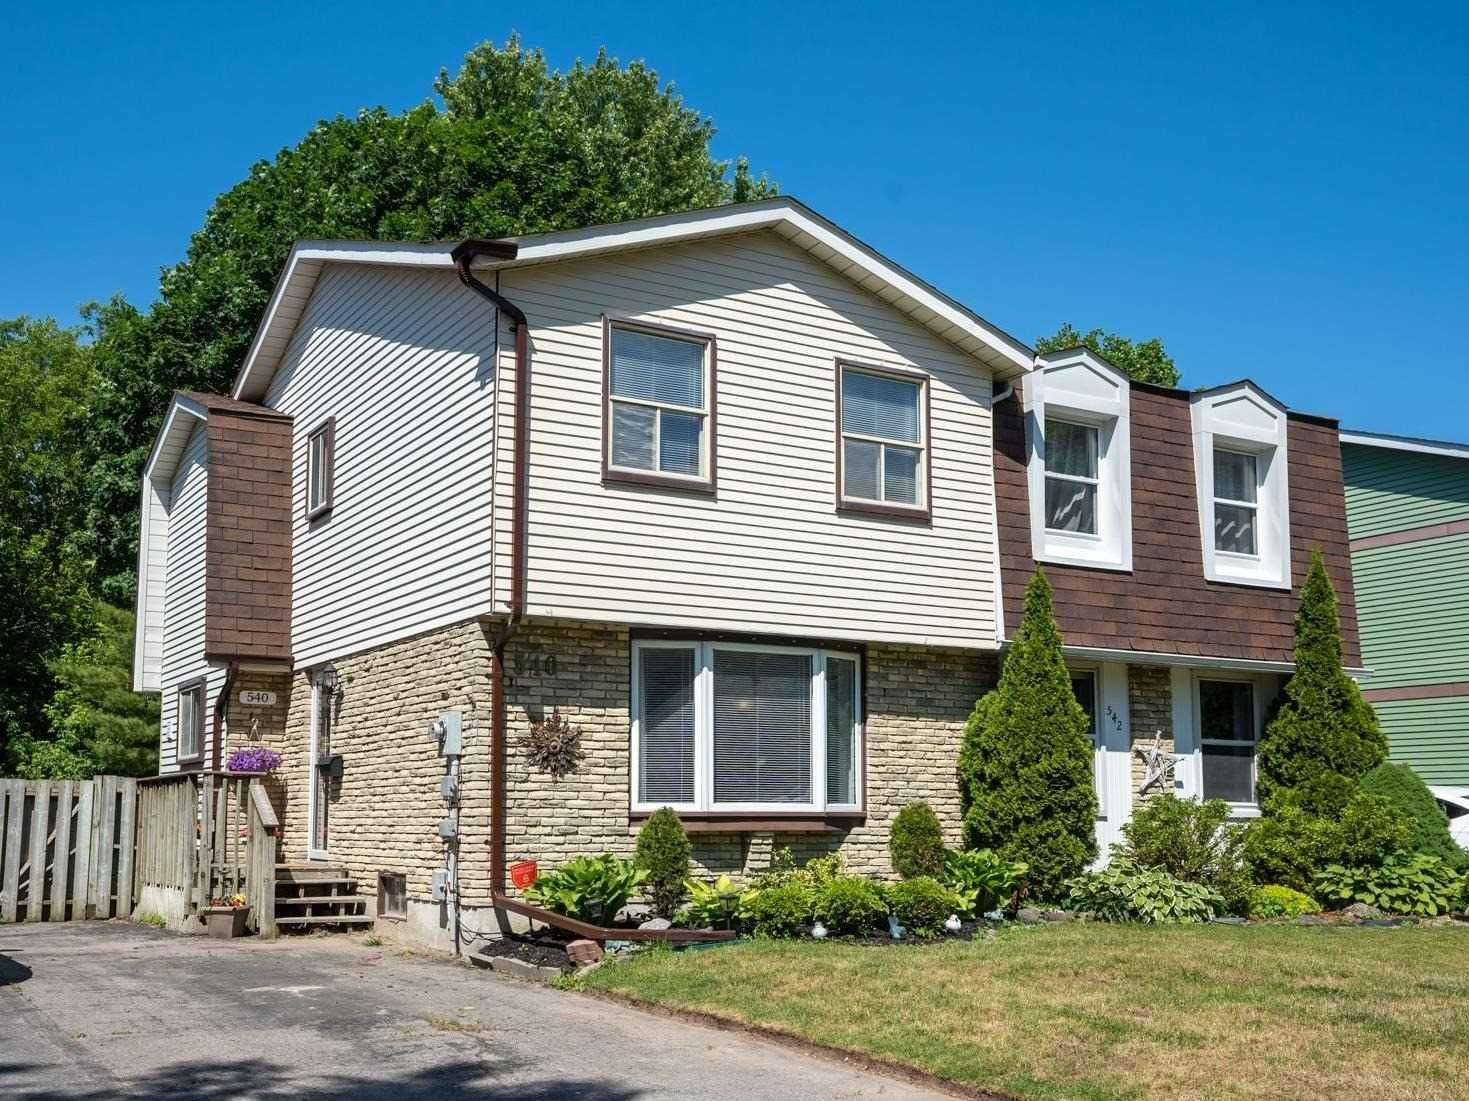 Main Photo: 540 Camelot Drive in Oshawa: Eastdale House (2-Storey) for sale : MLS®# E4812018